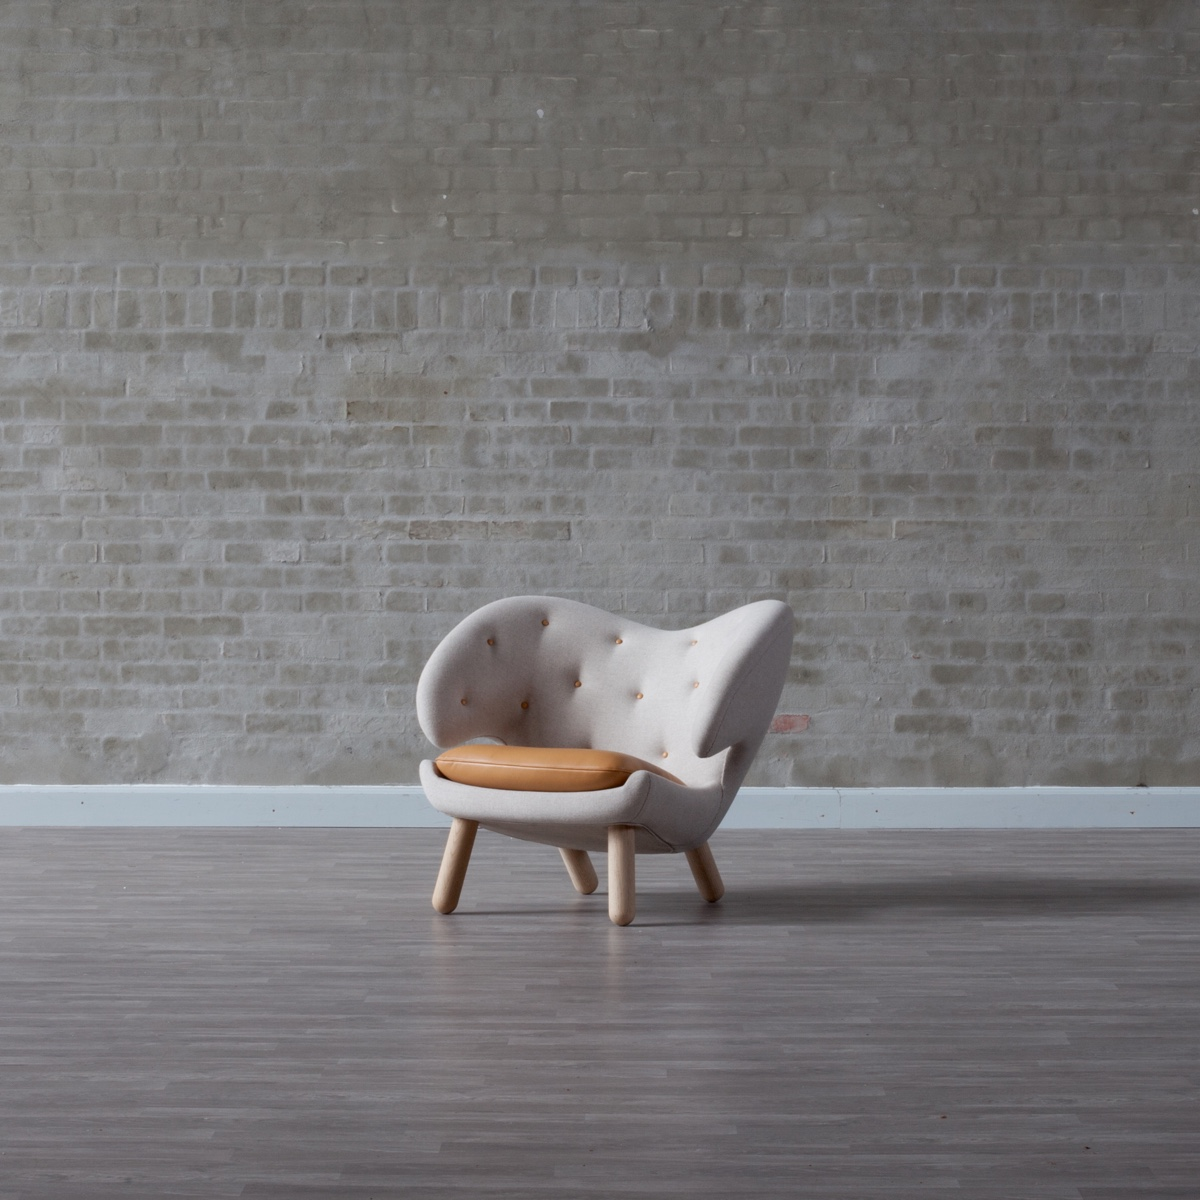 Pelican Chair, designed by Finn Juhl in 1940. Image © 2016 House of FinnJuhl™.